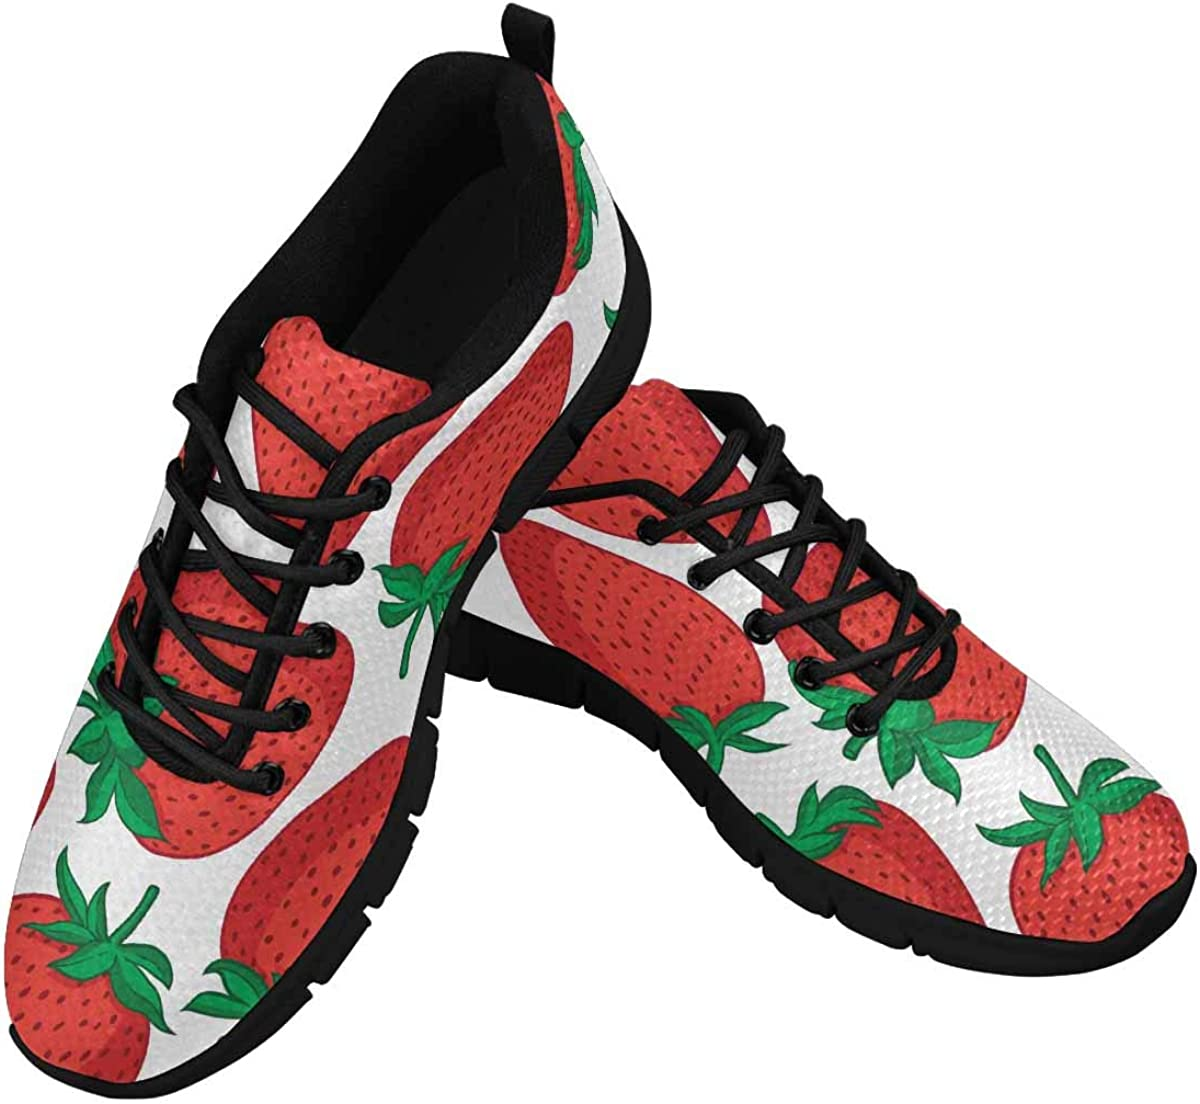 InterestPrint Red Strawberries Lightweight Mesh Breathable Sneakers for Women